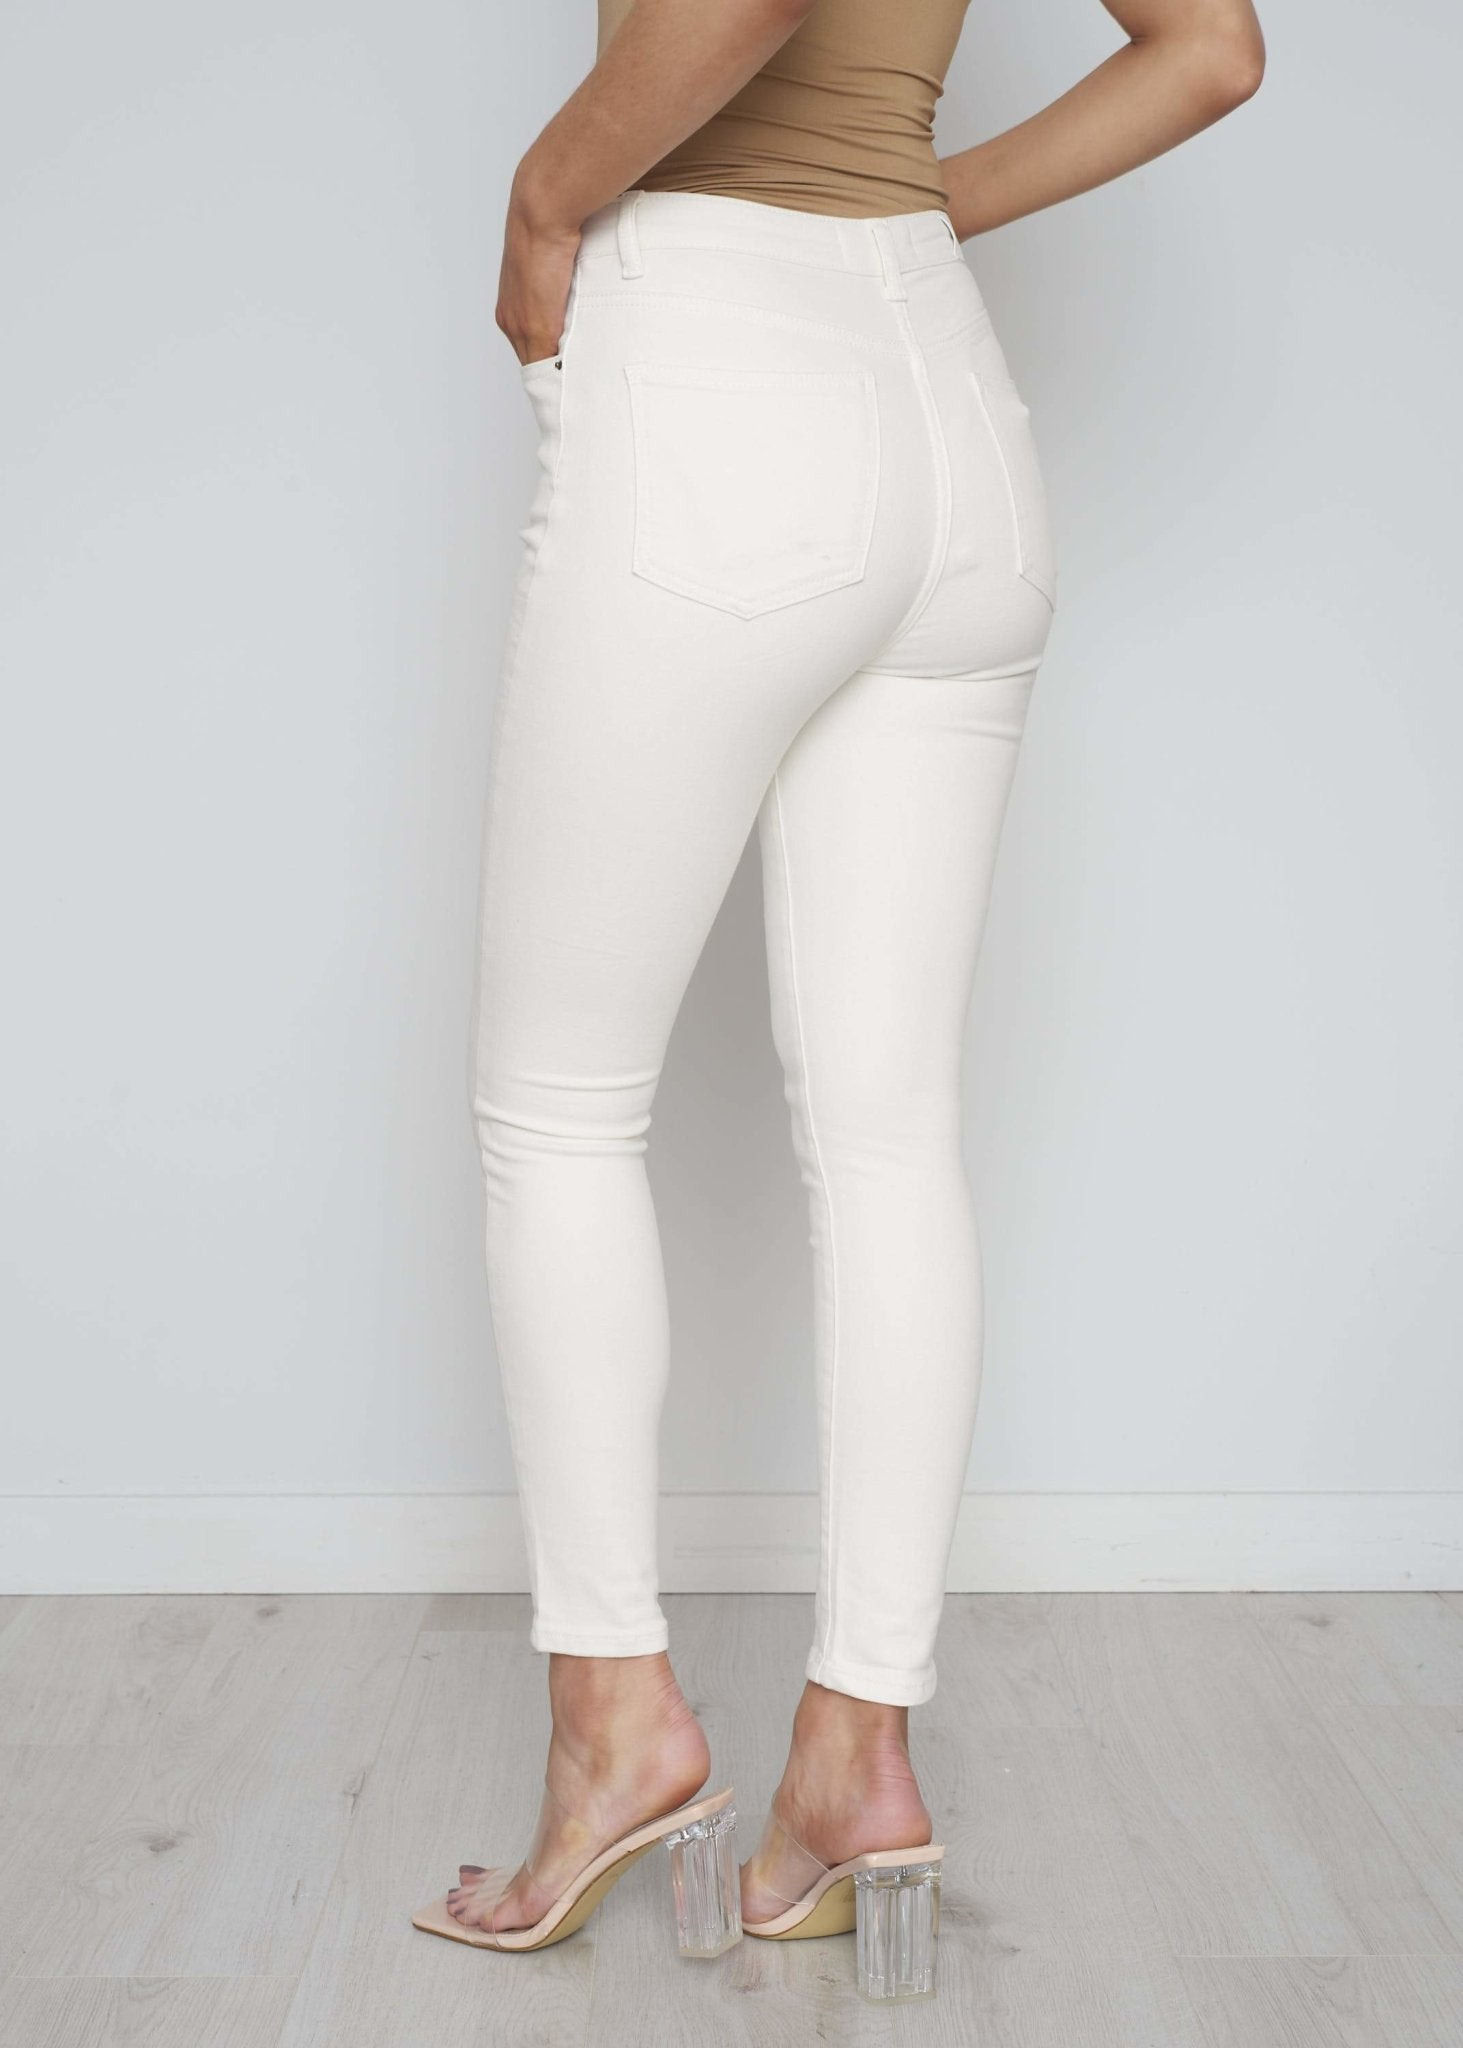 Marian Skinny Jean In Cream - The Walk in Wardrobe